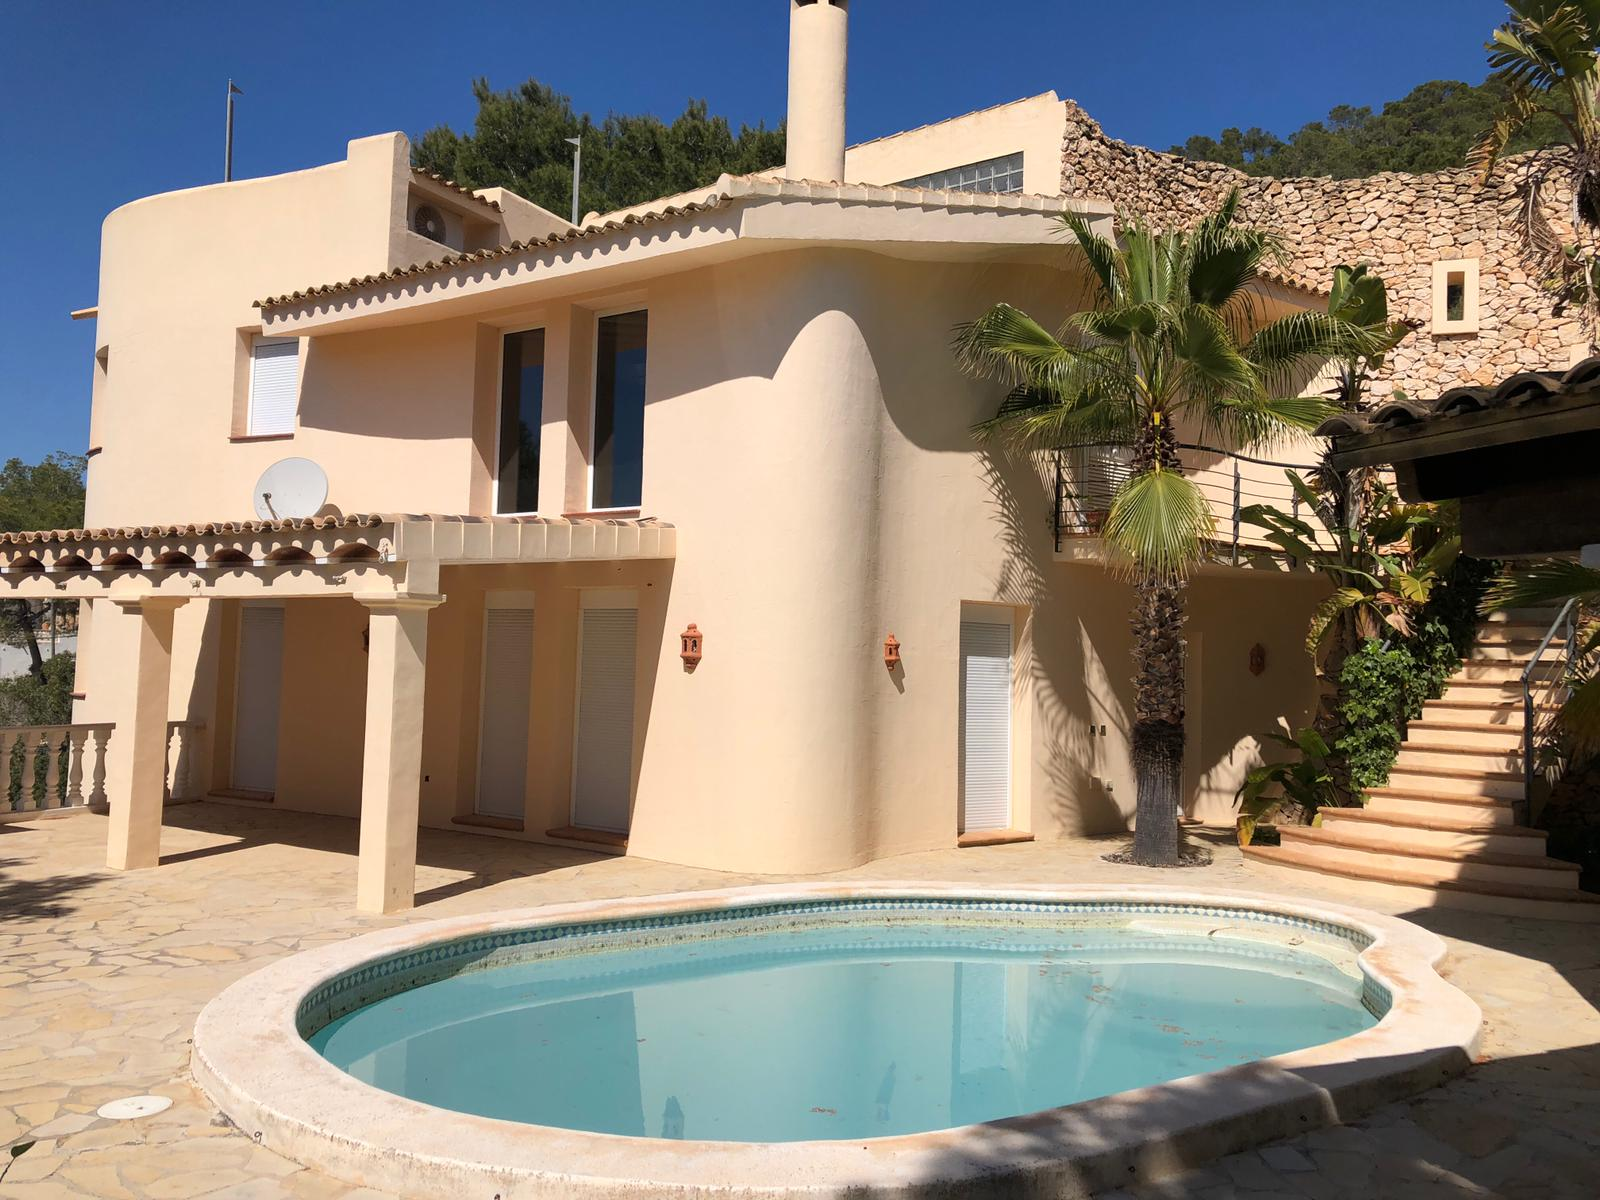 Large villa with 2 separate houses and guest apartment  in a quiet area